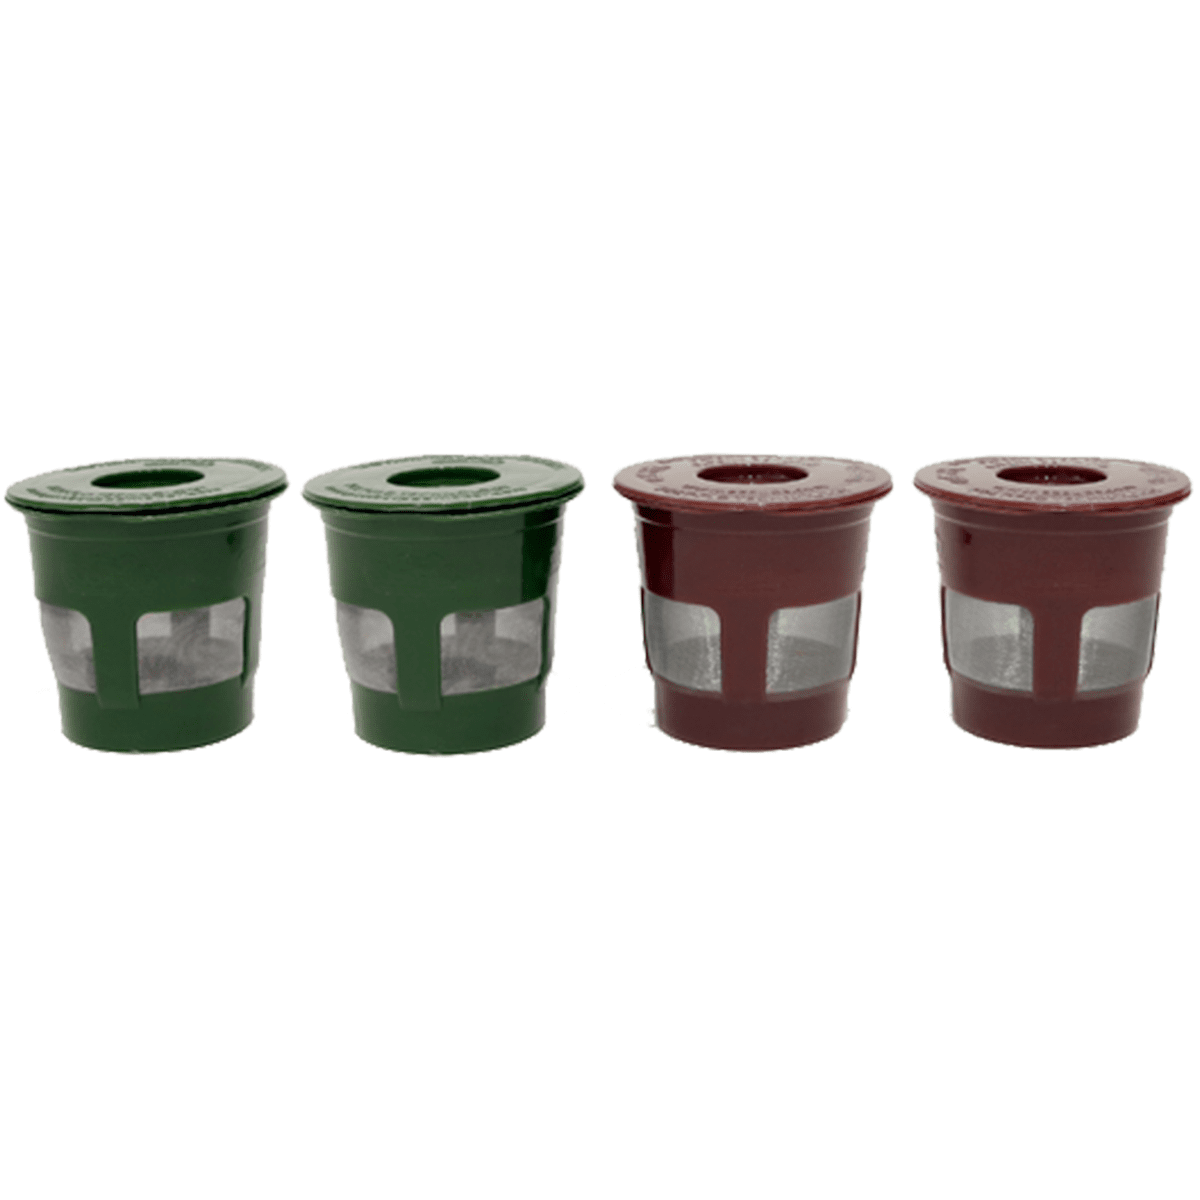 Image of Oxx Eco-Fill Reusable Coffee Pods - 4 Pack